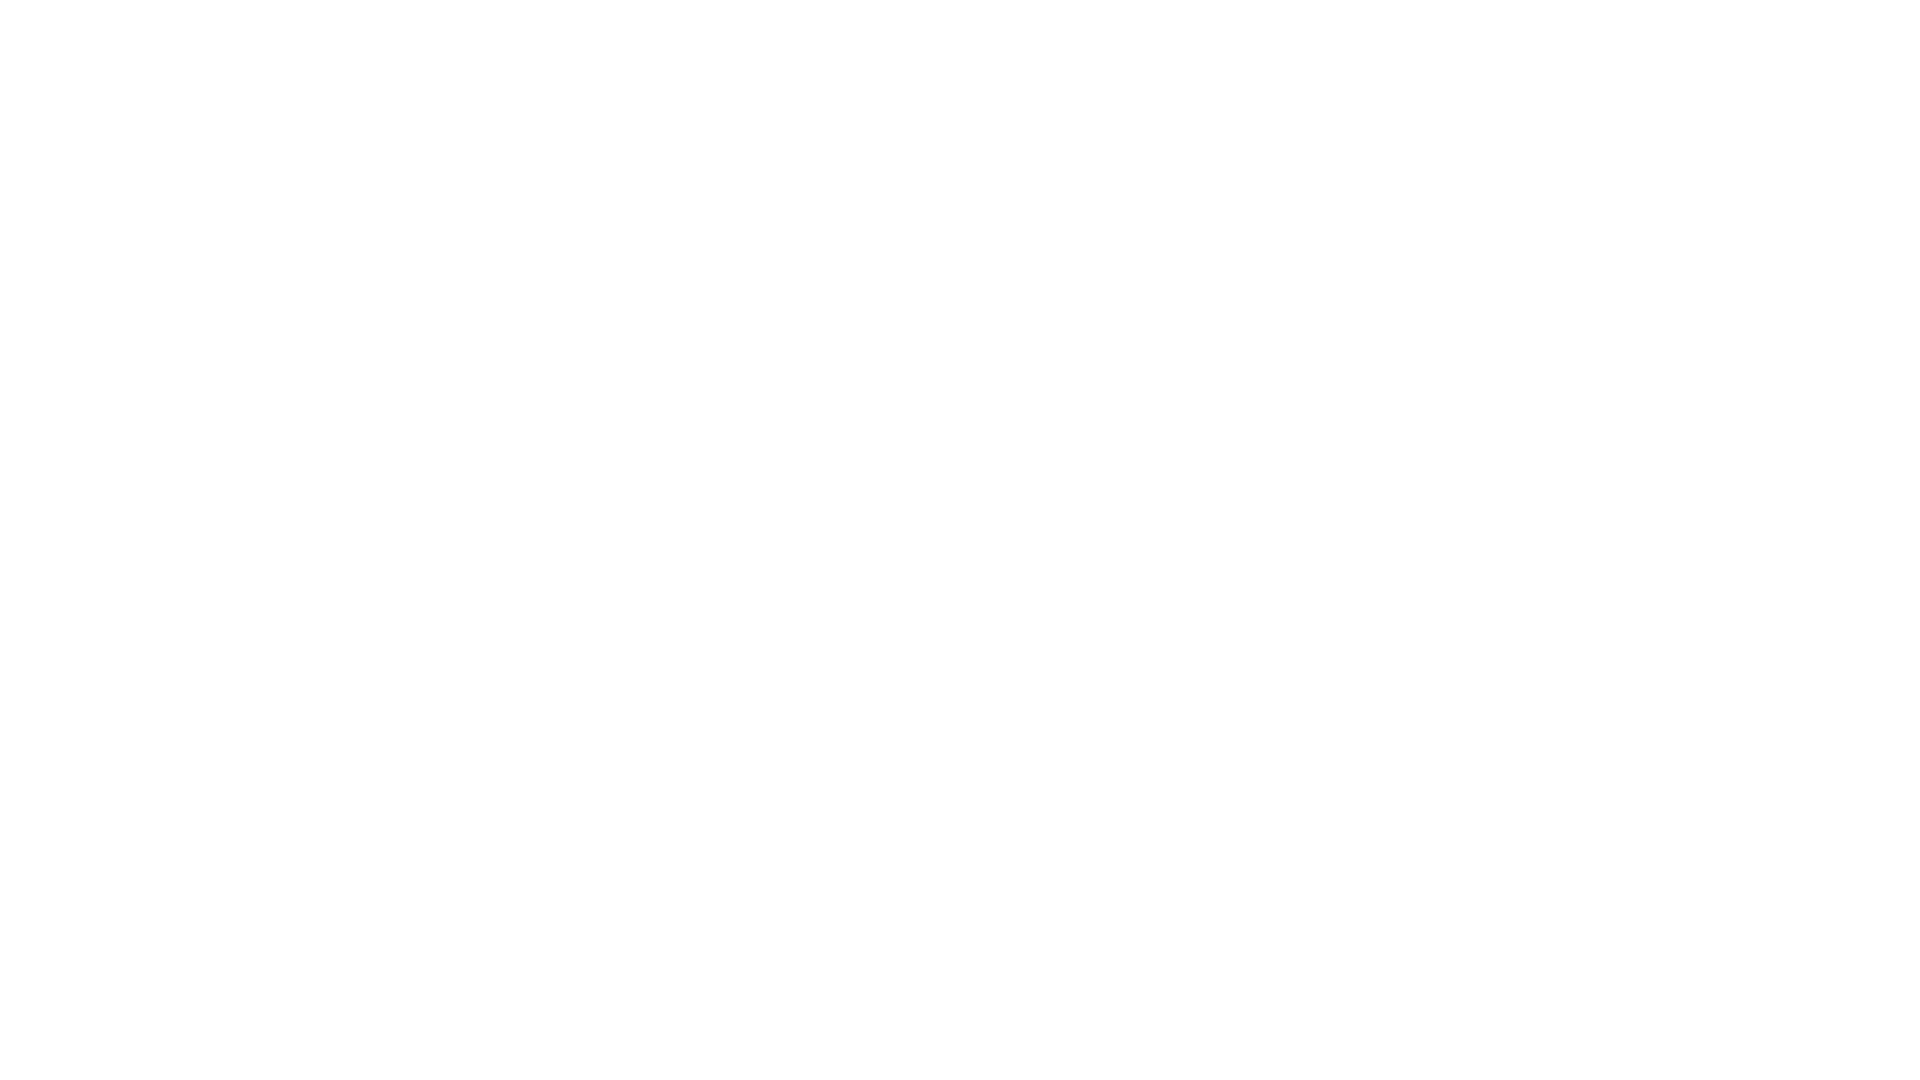 be bold live wild.png